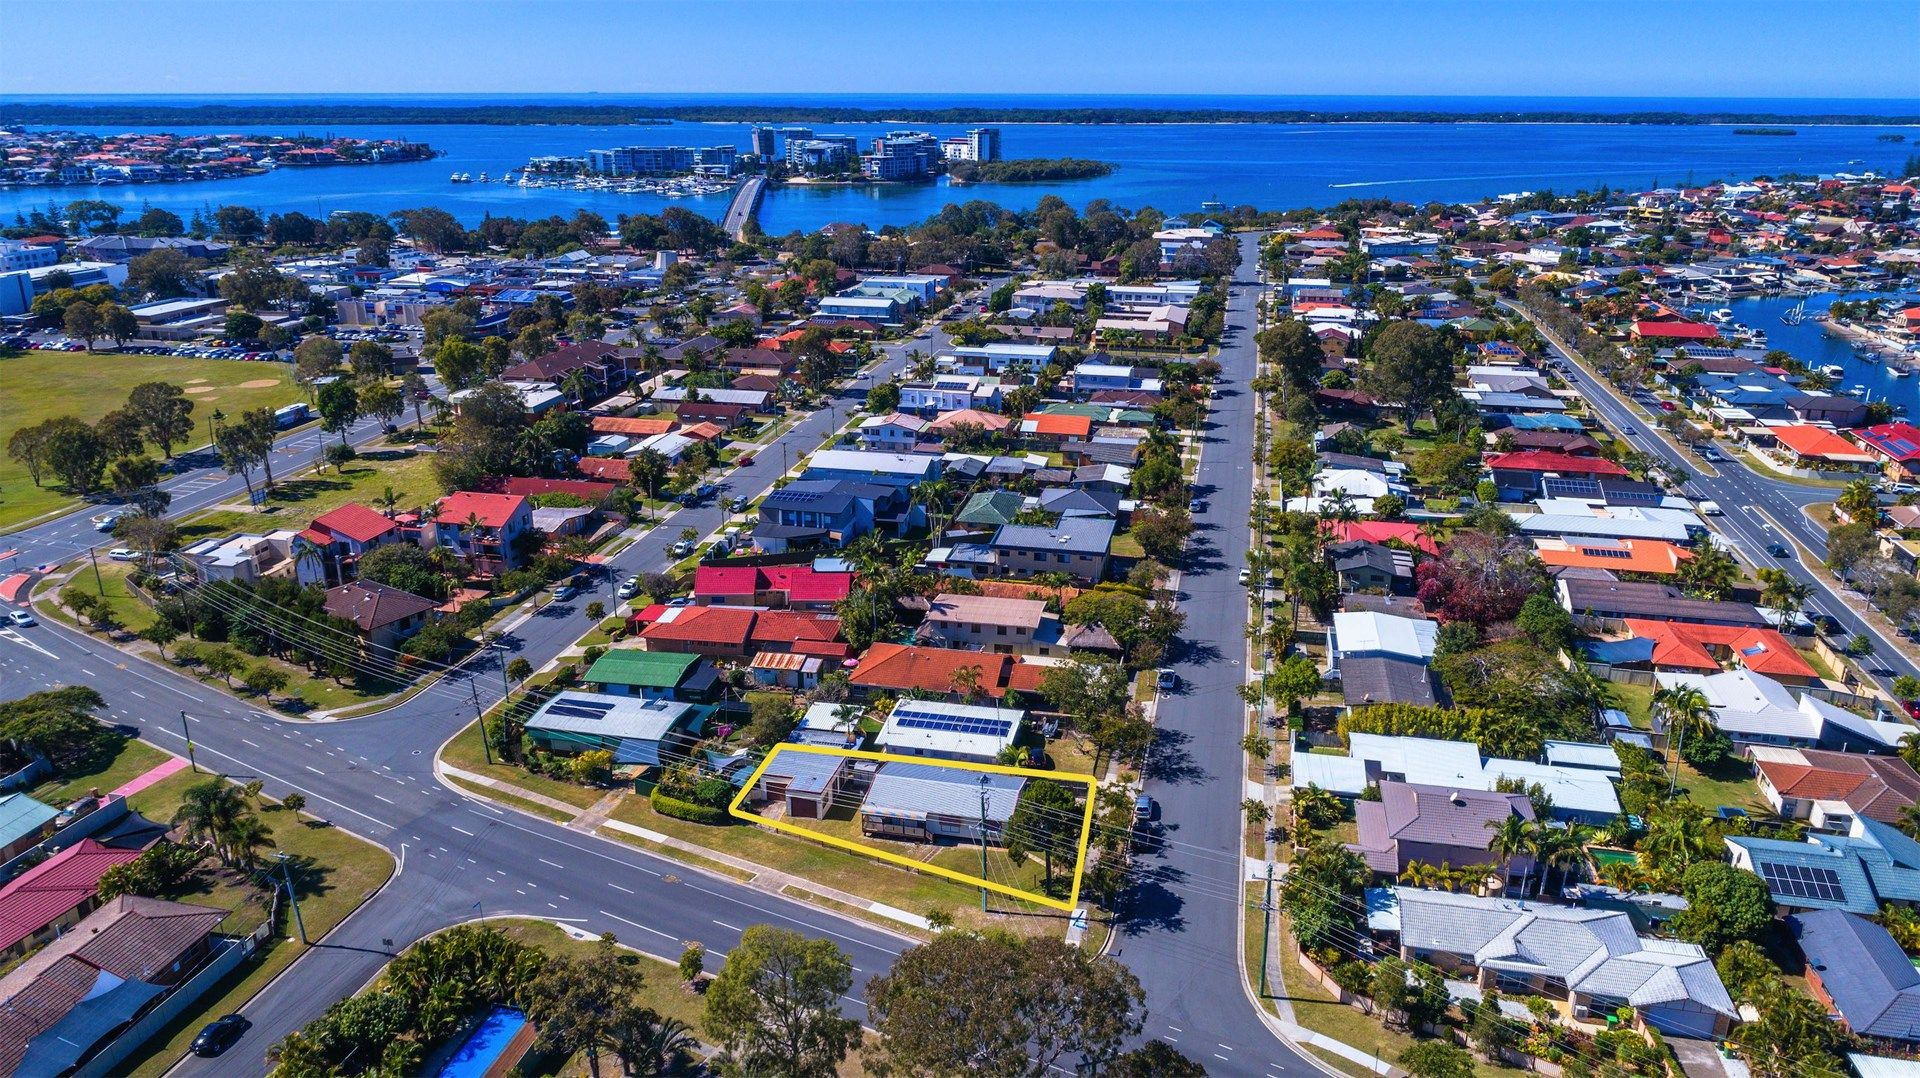 69 Errol Avenue, Paradise Point QLD 4216, Image 0